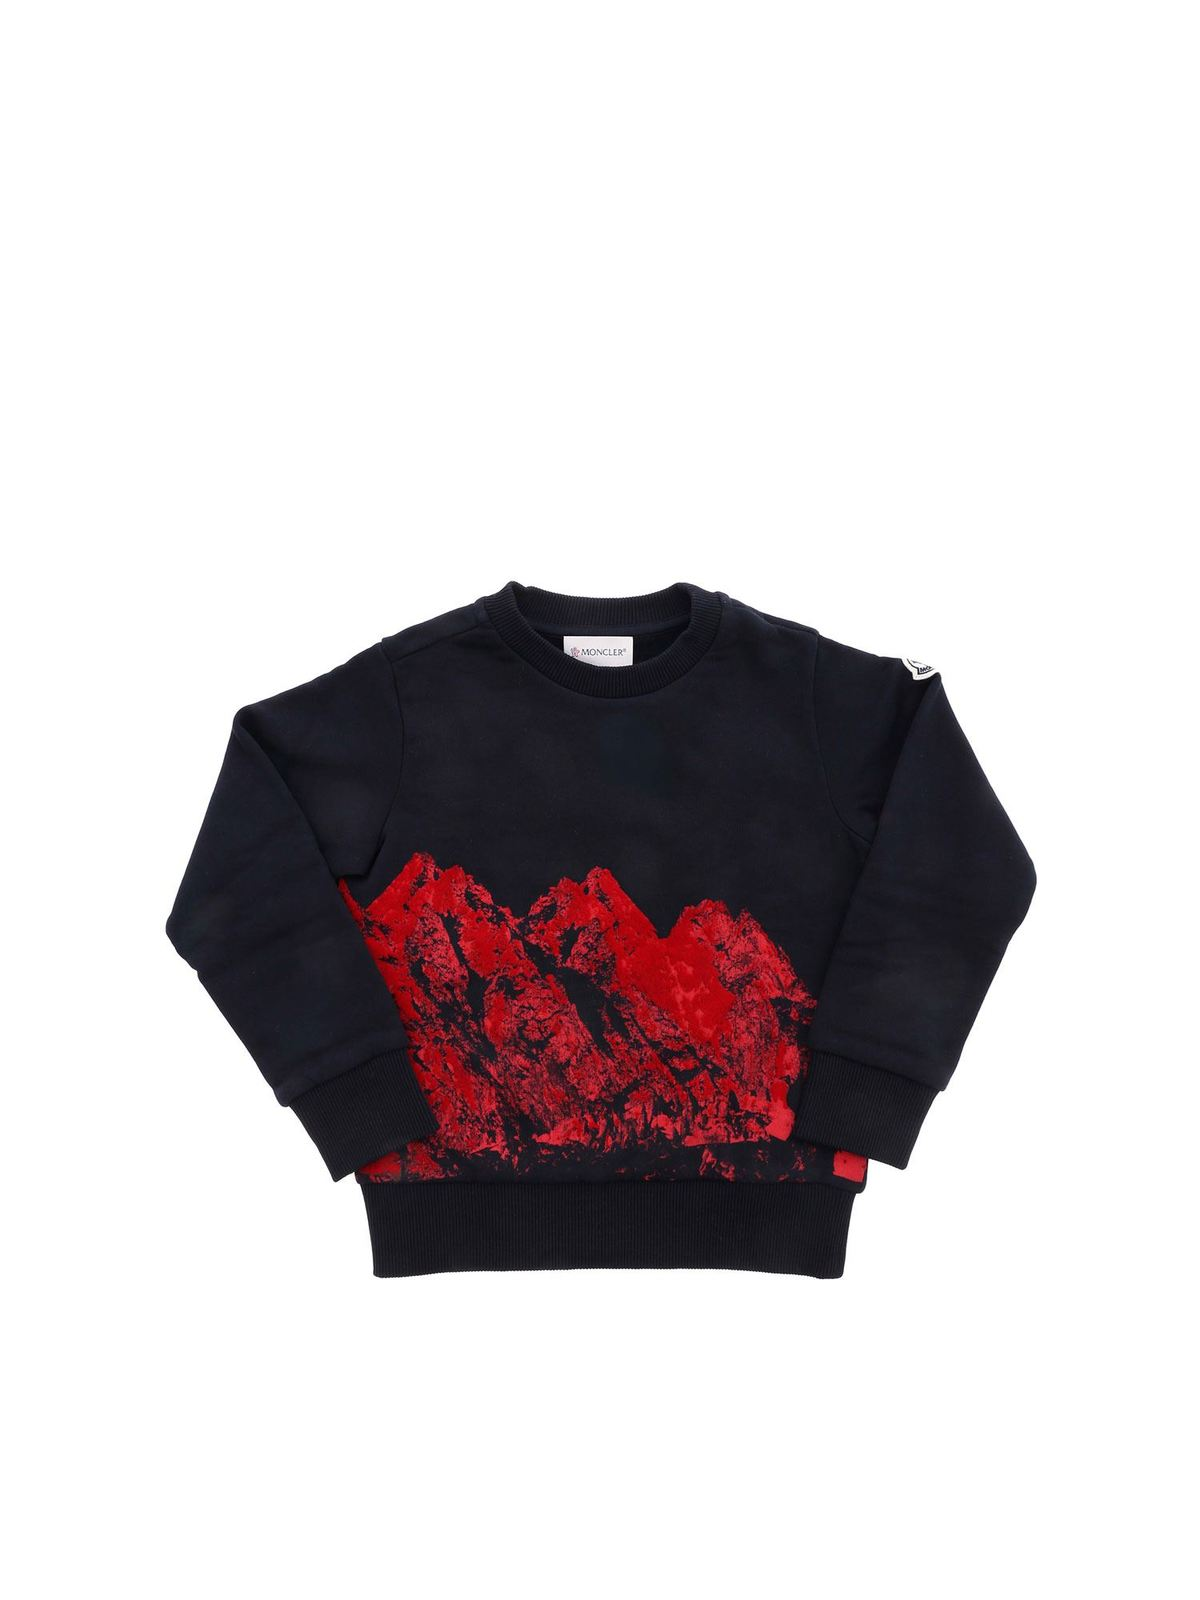 MONCLER JR FLOCK PRINT SWEATSHIRT IN BLUE